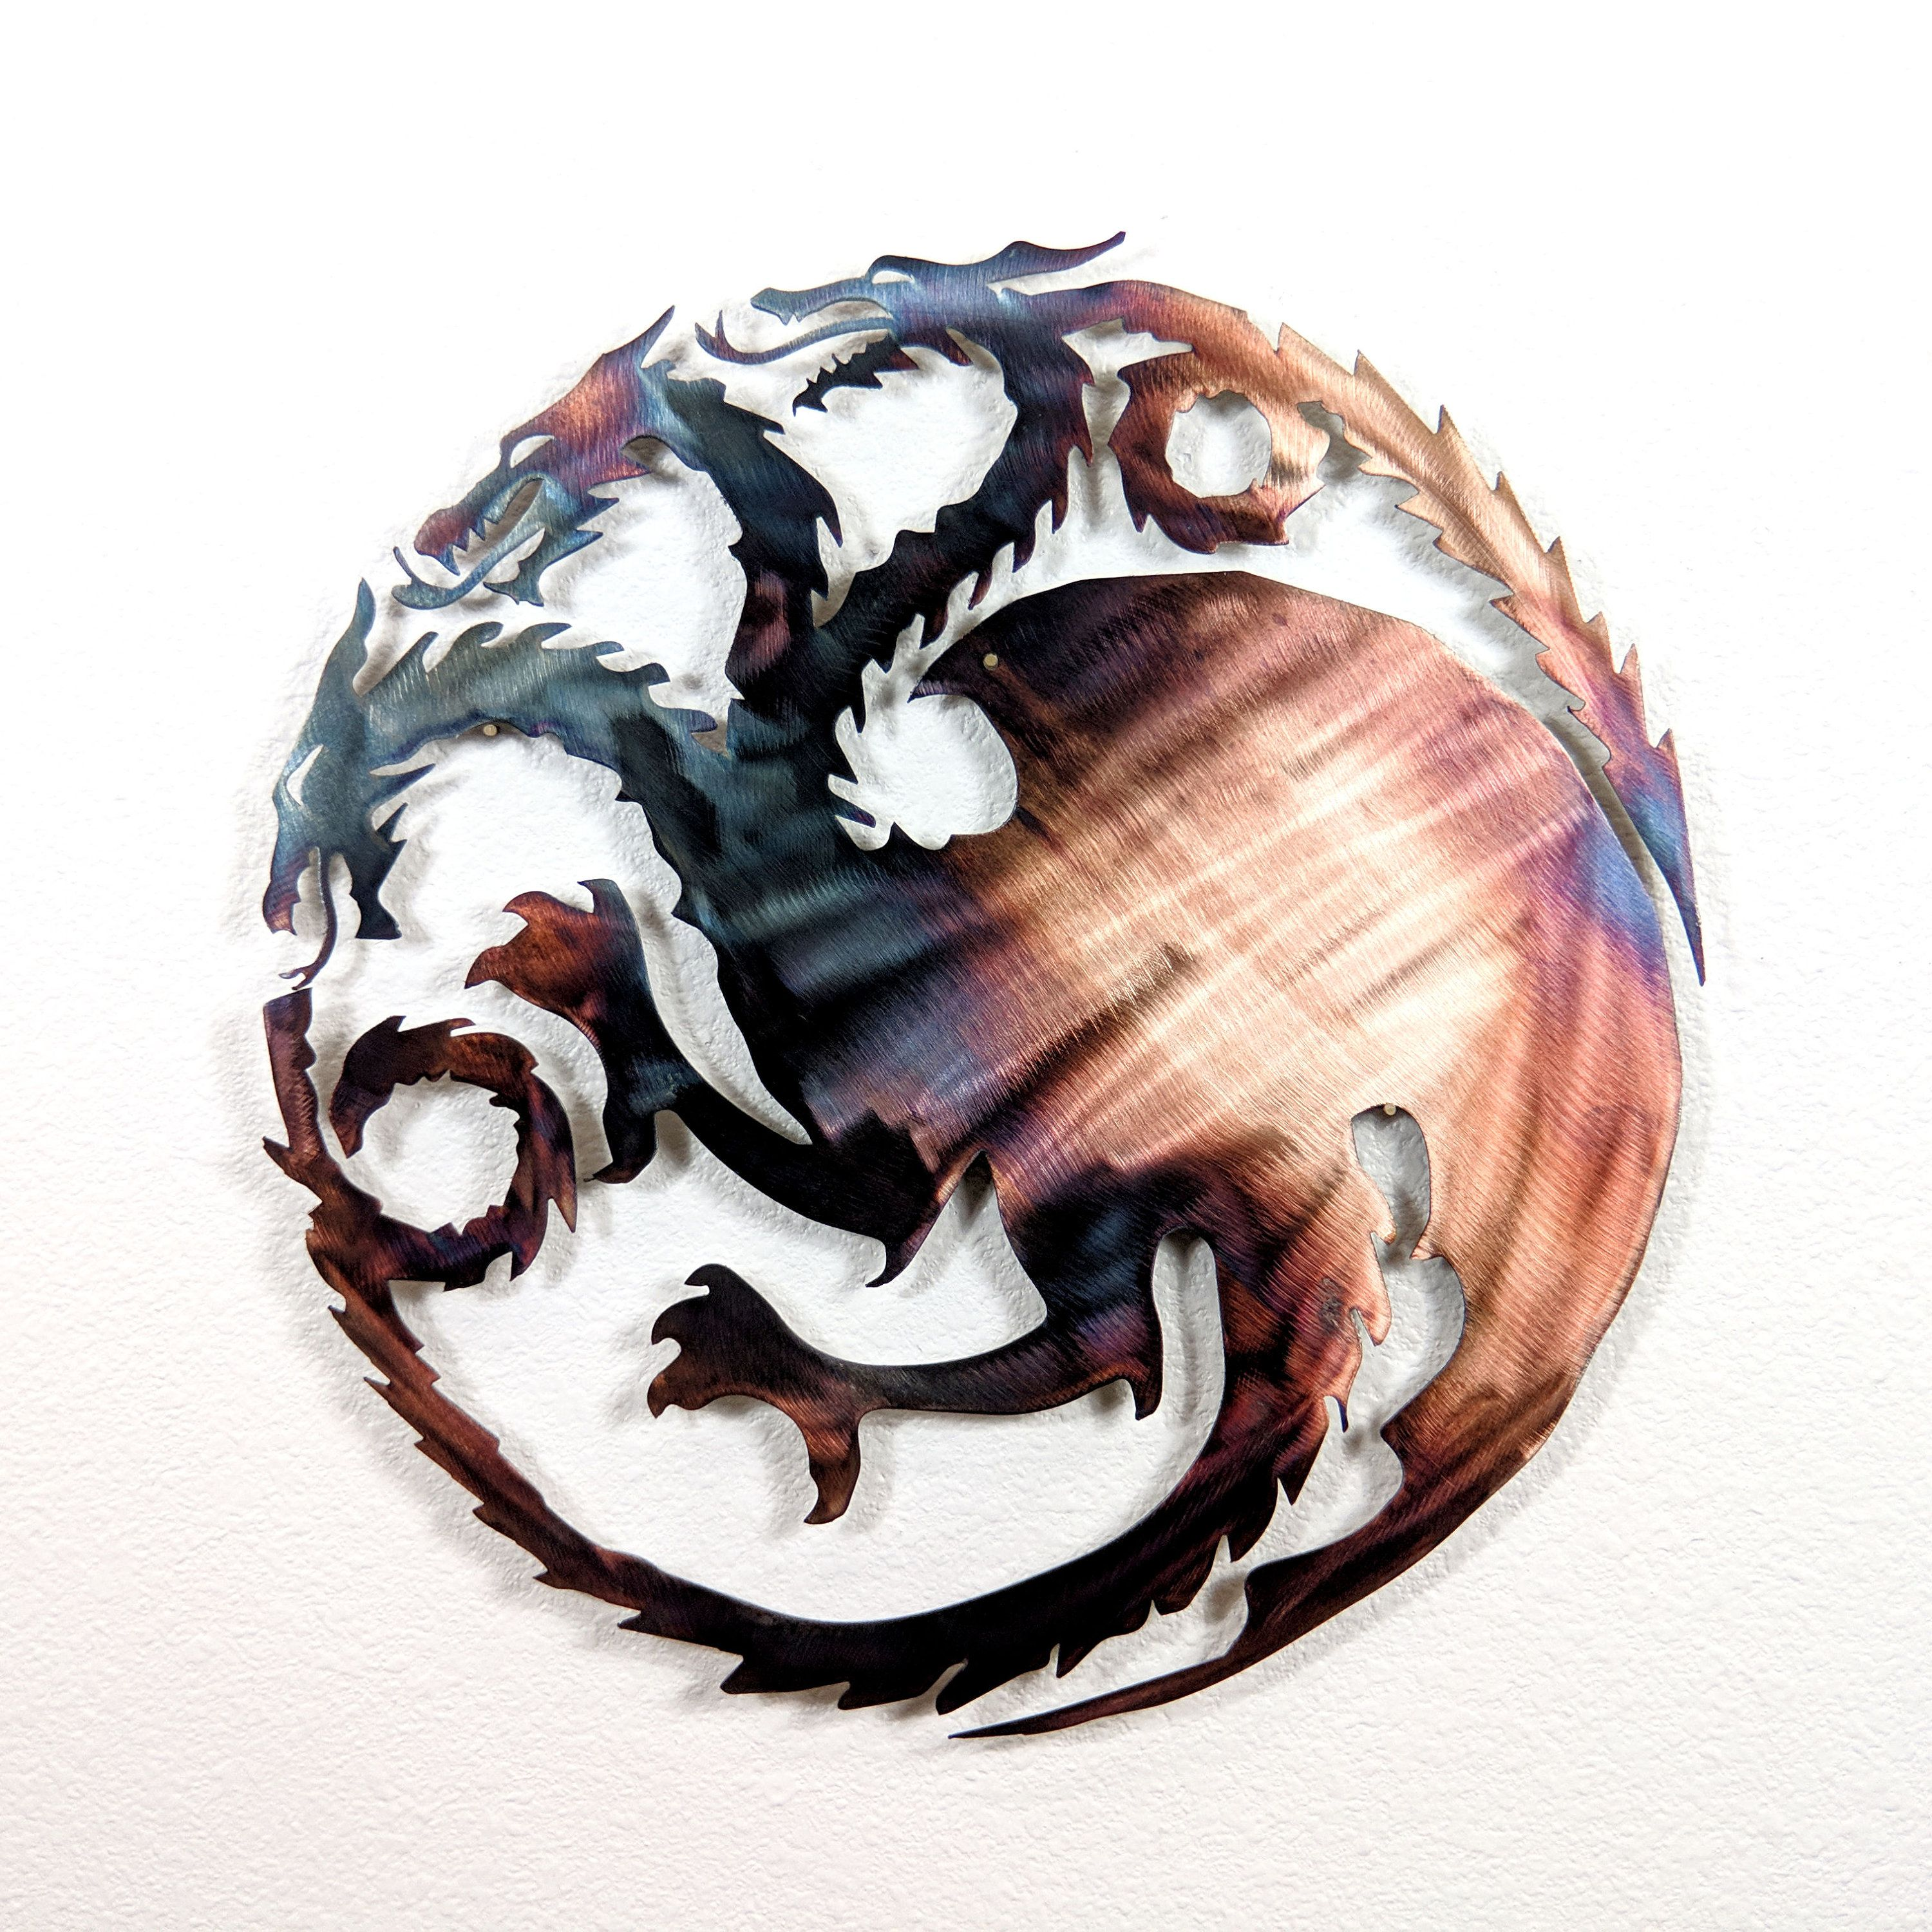 Game of Thrones house Targaryen wall art stencil,Strong,Reusable,Recyclable